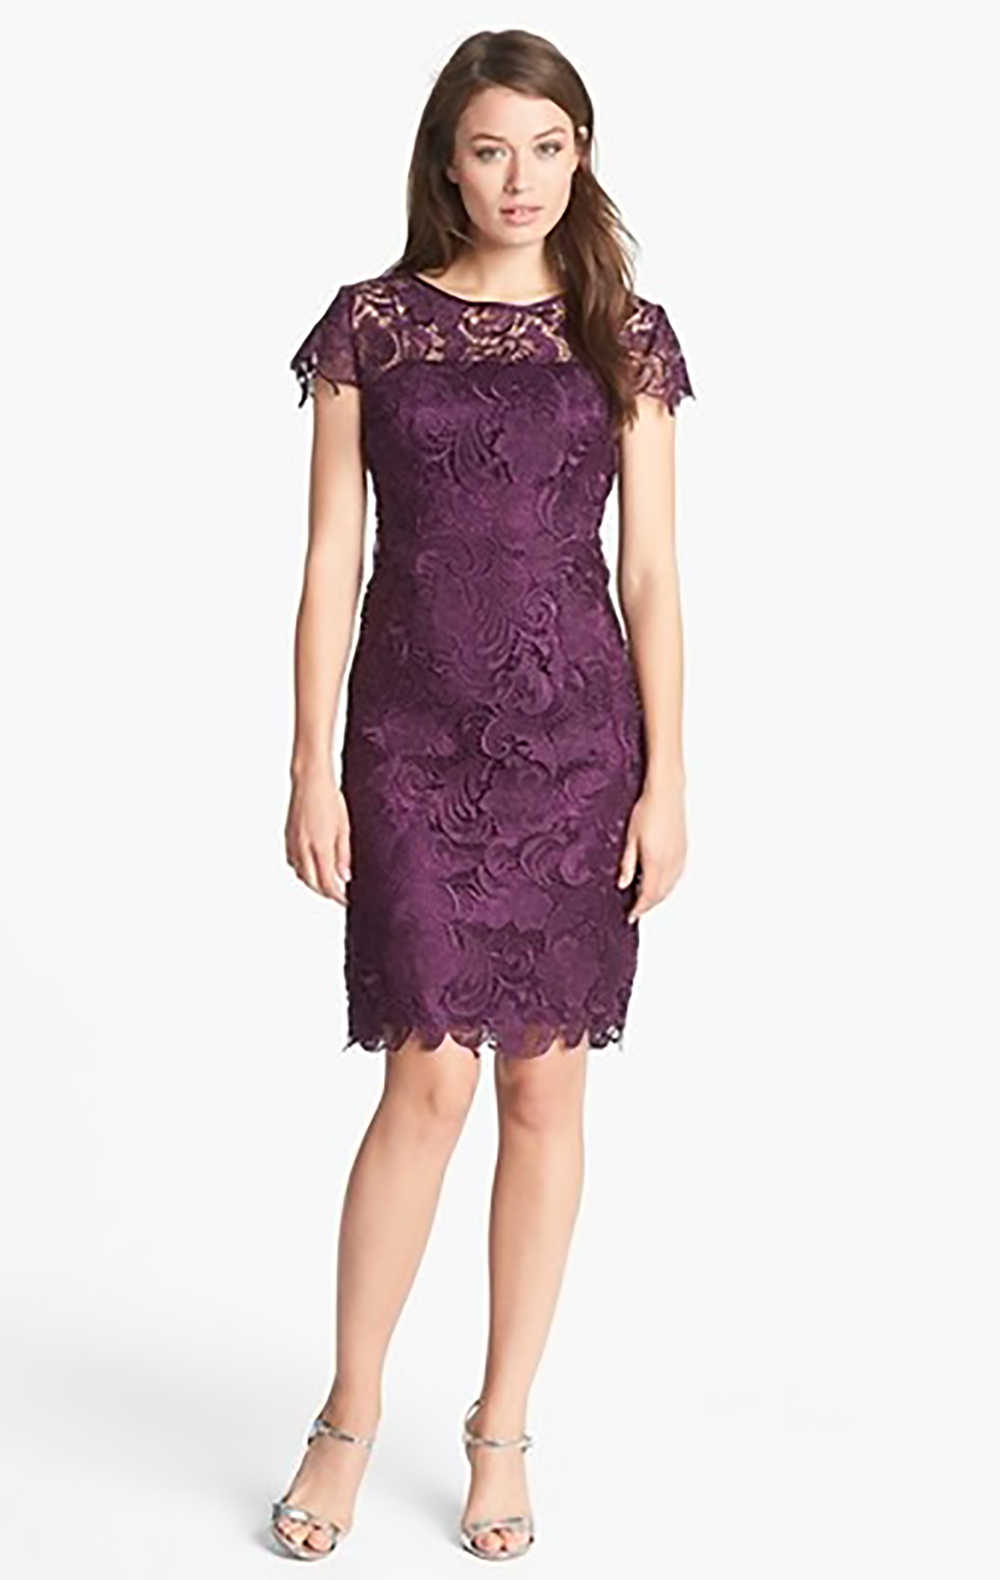 nordstrom patra crocheted venise lace sheath dress holiday party 1500.jpg